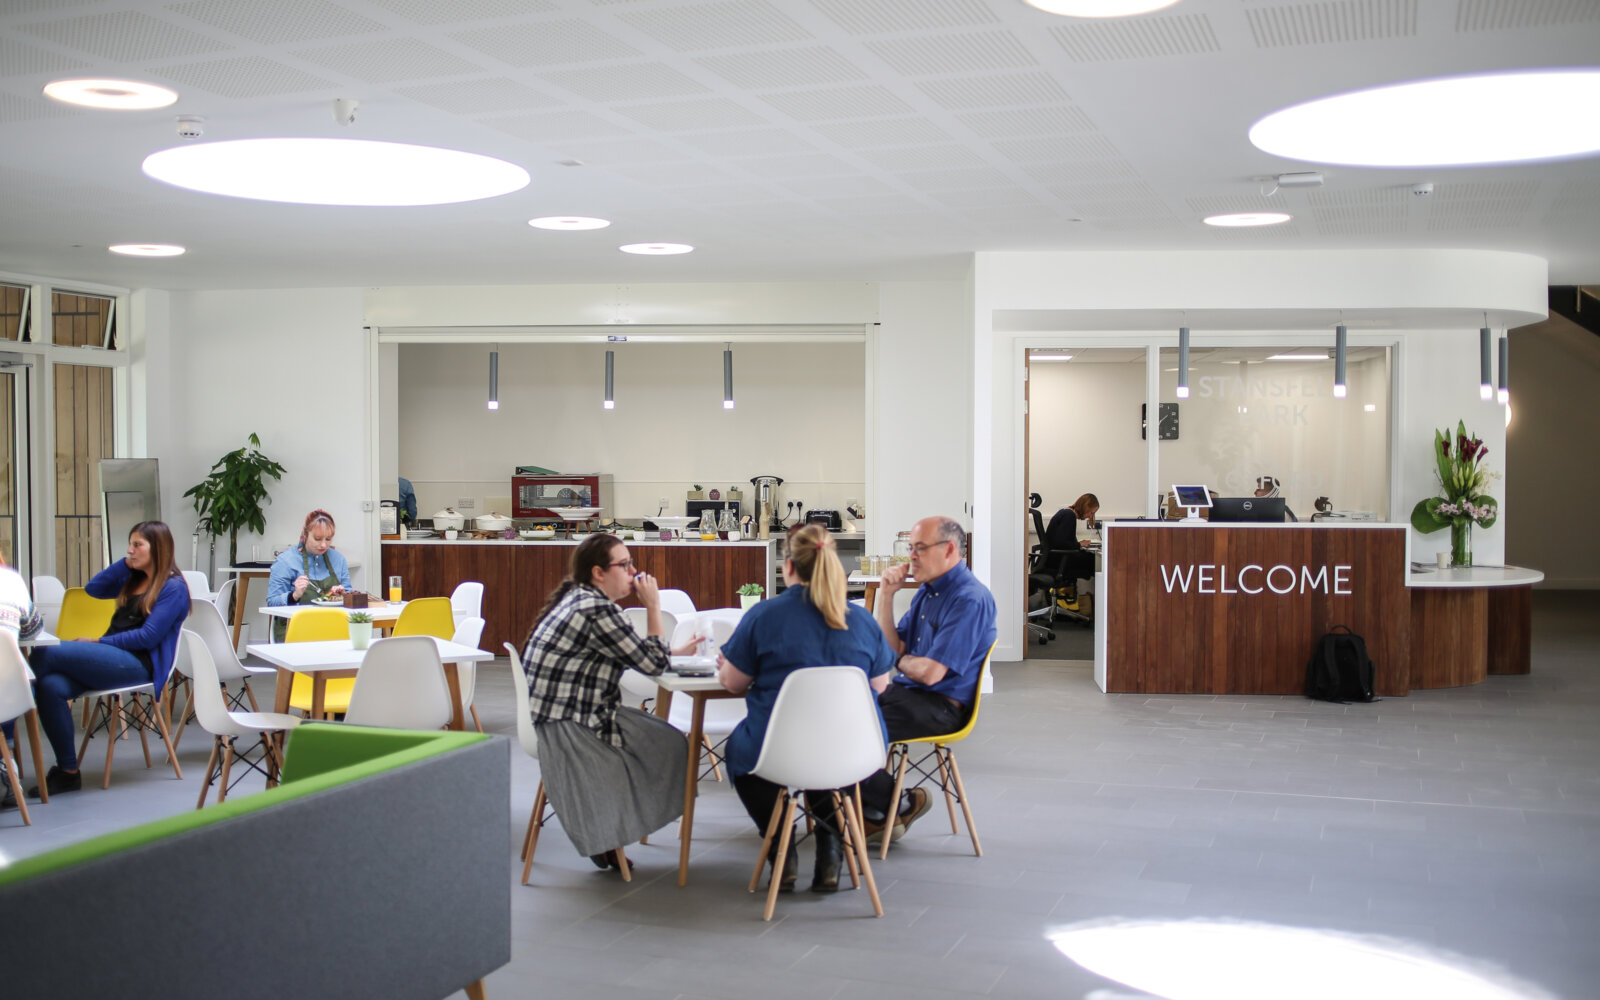 Stansfeld Park reception and cafe area